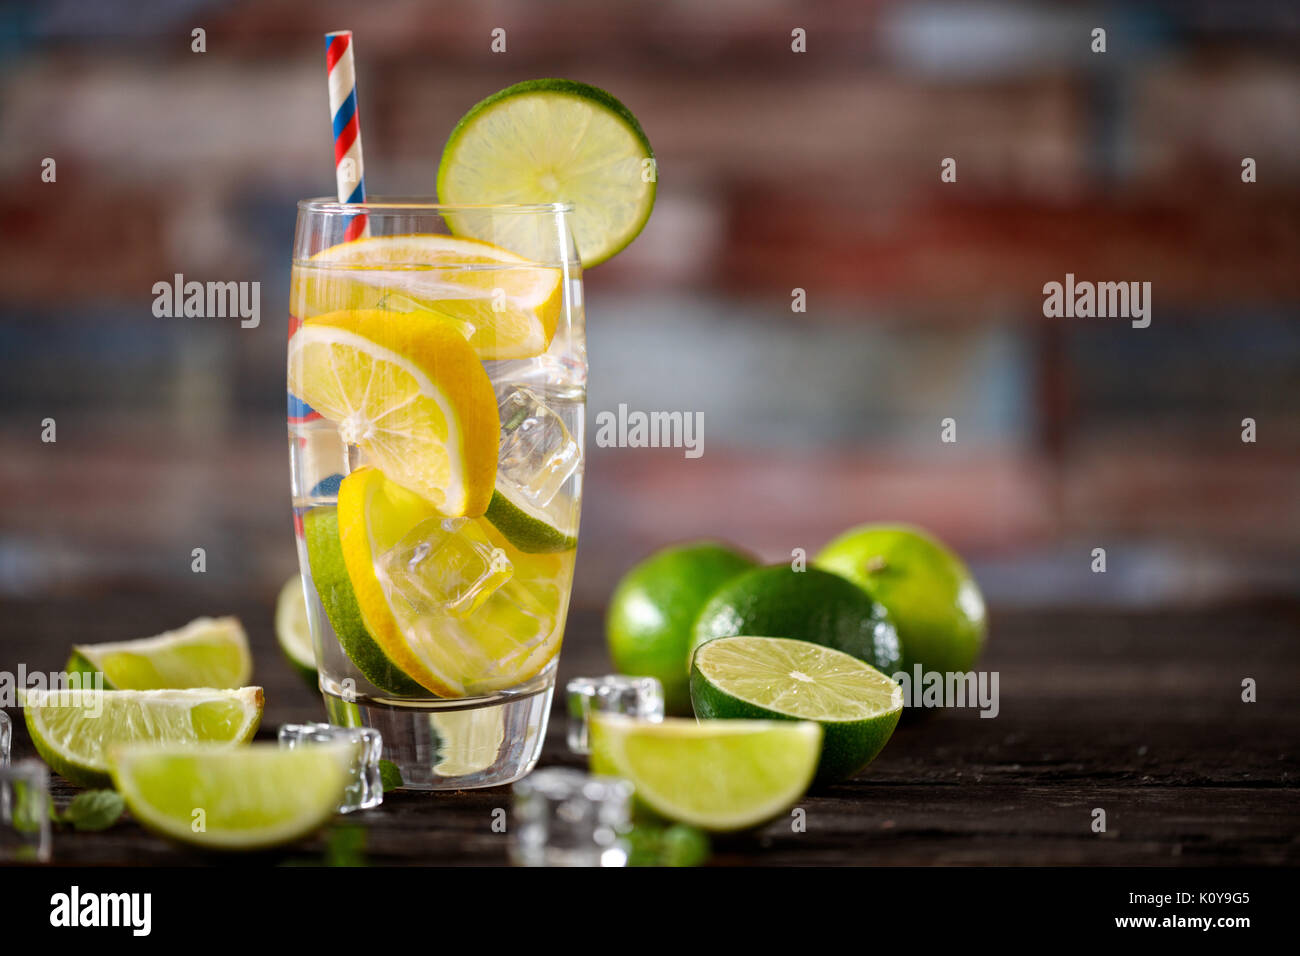 Citrus fruit fresh cocktail with water dieting in glass- healthy lifestyle concept Stock Photo